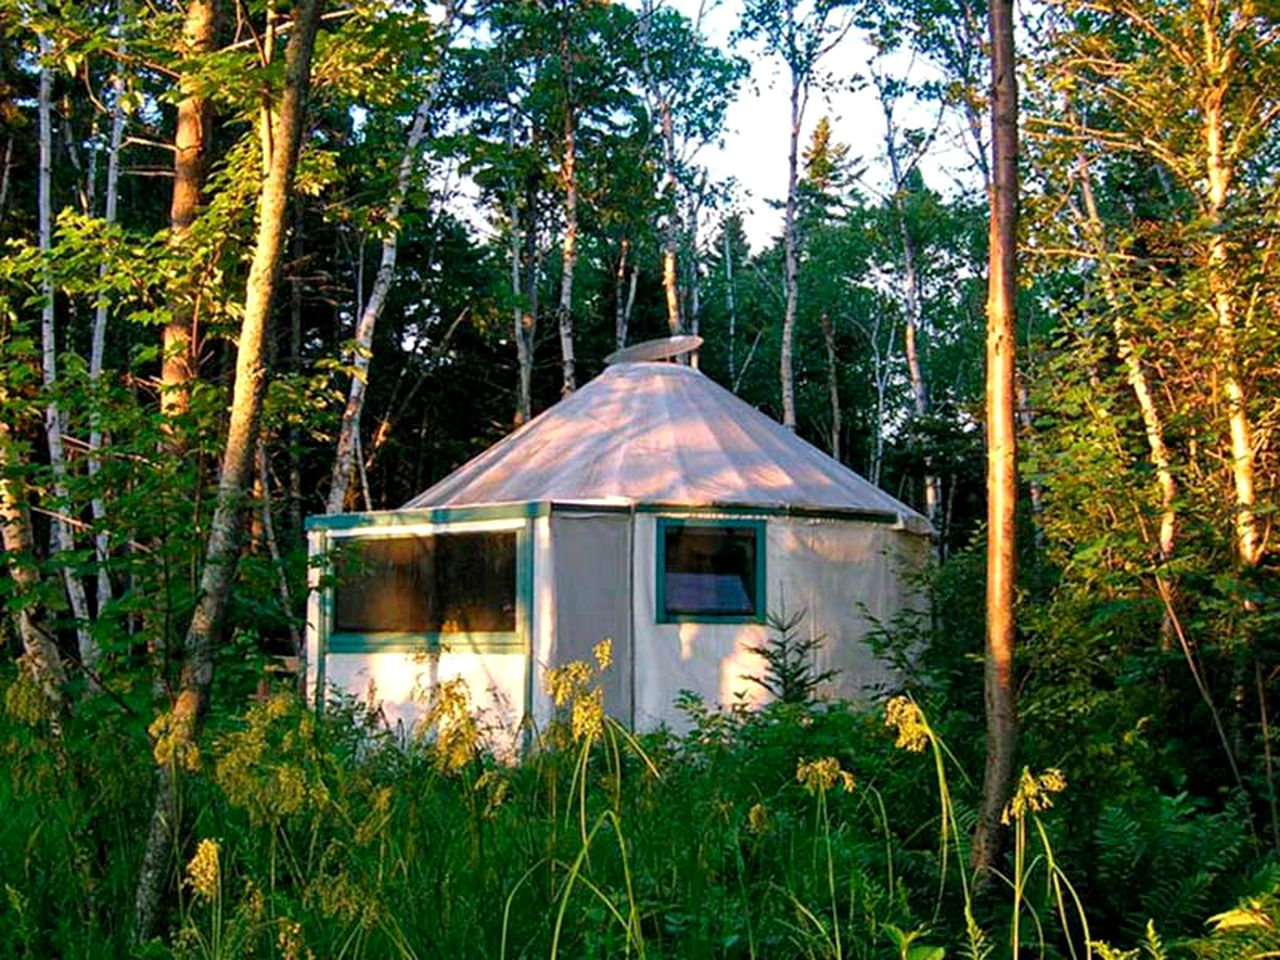 Bay Of Fundy Camping >> Countryside Camping Yurt Near Bay Of Fundy In New Brunswick Canada